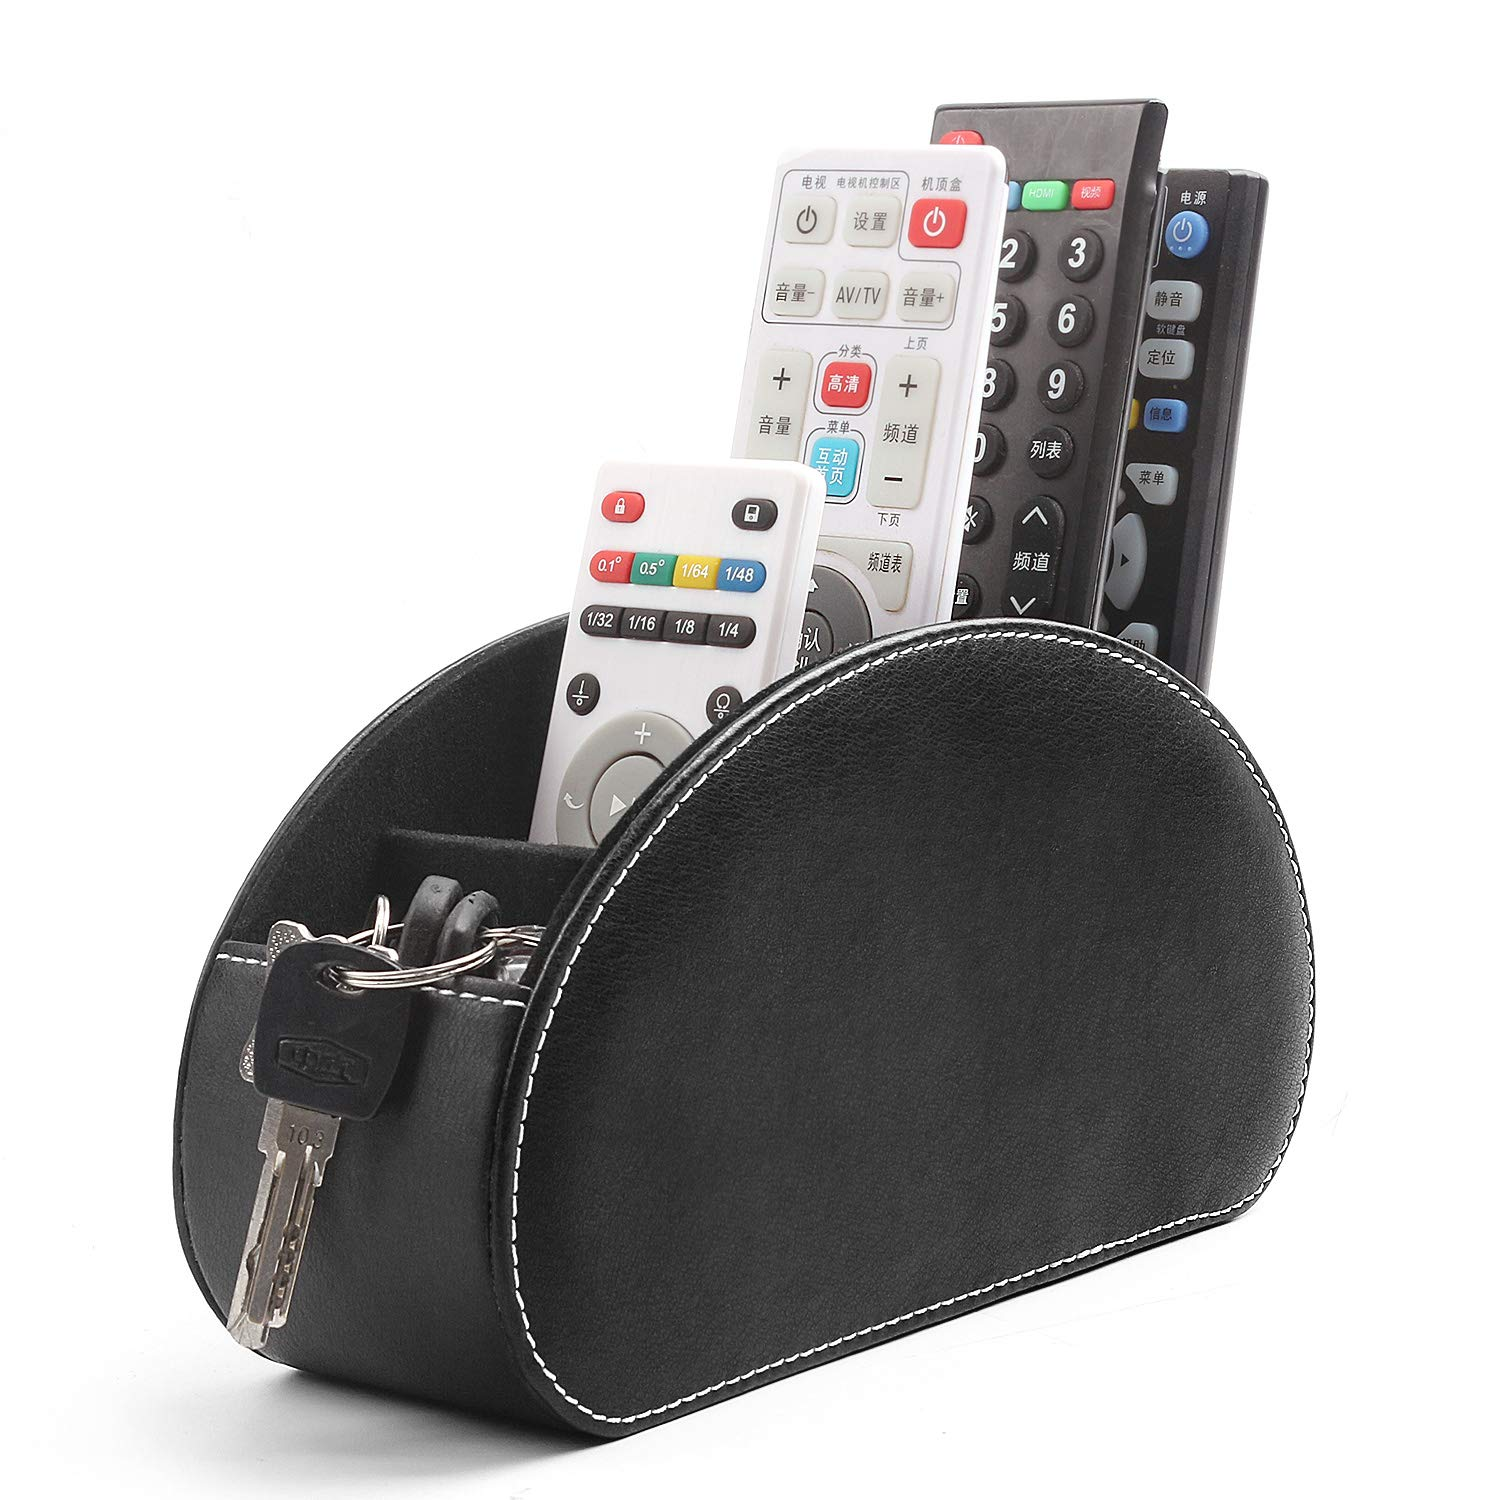 Remote Control Holder Organizer Leather TV Media Table Caddy Storage with 5 Spacious Compartments